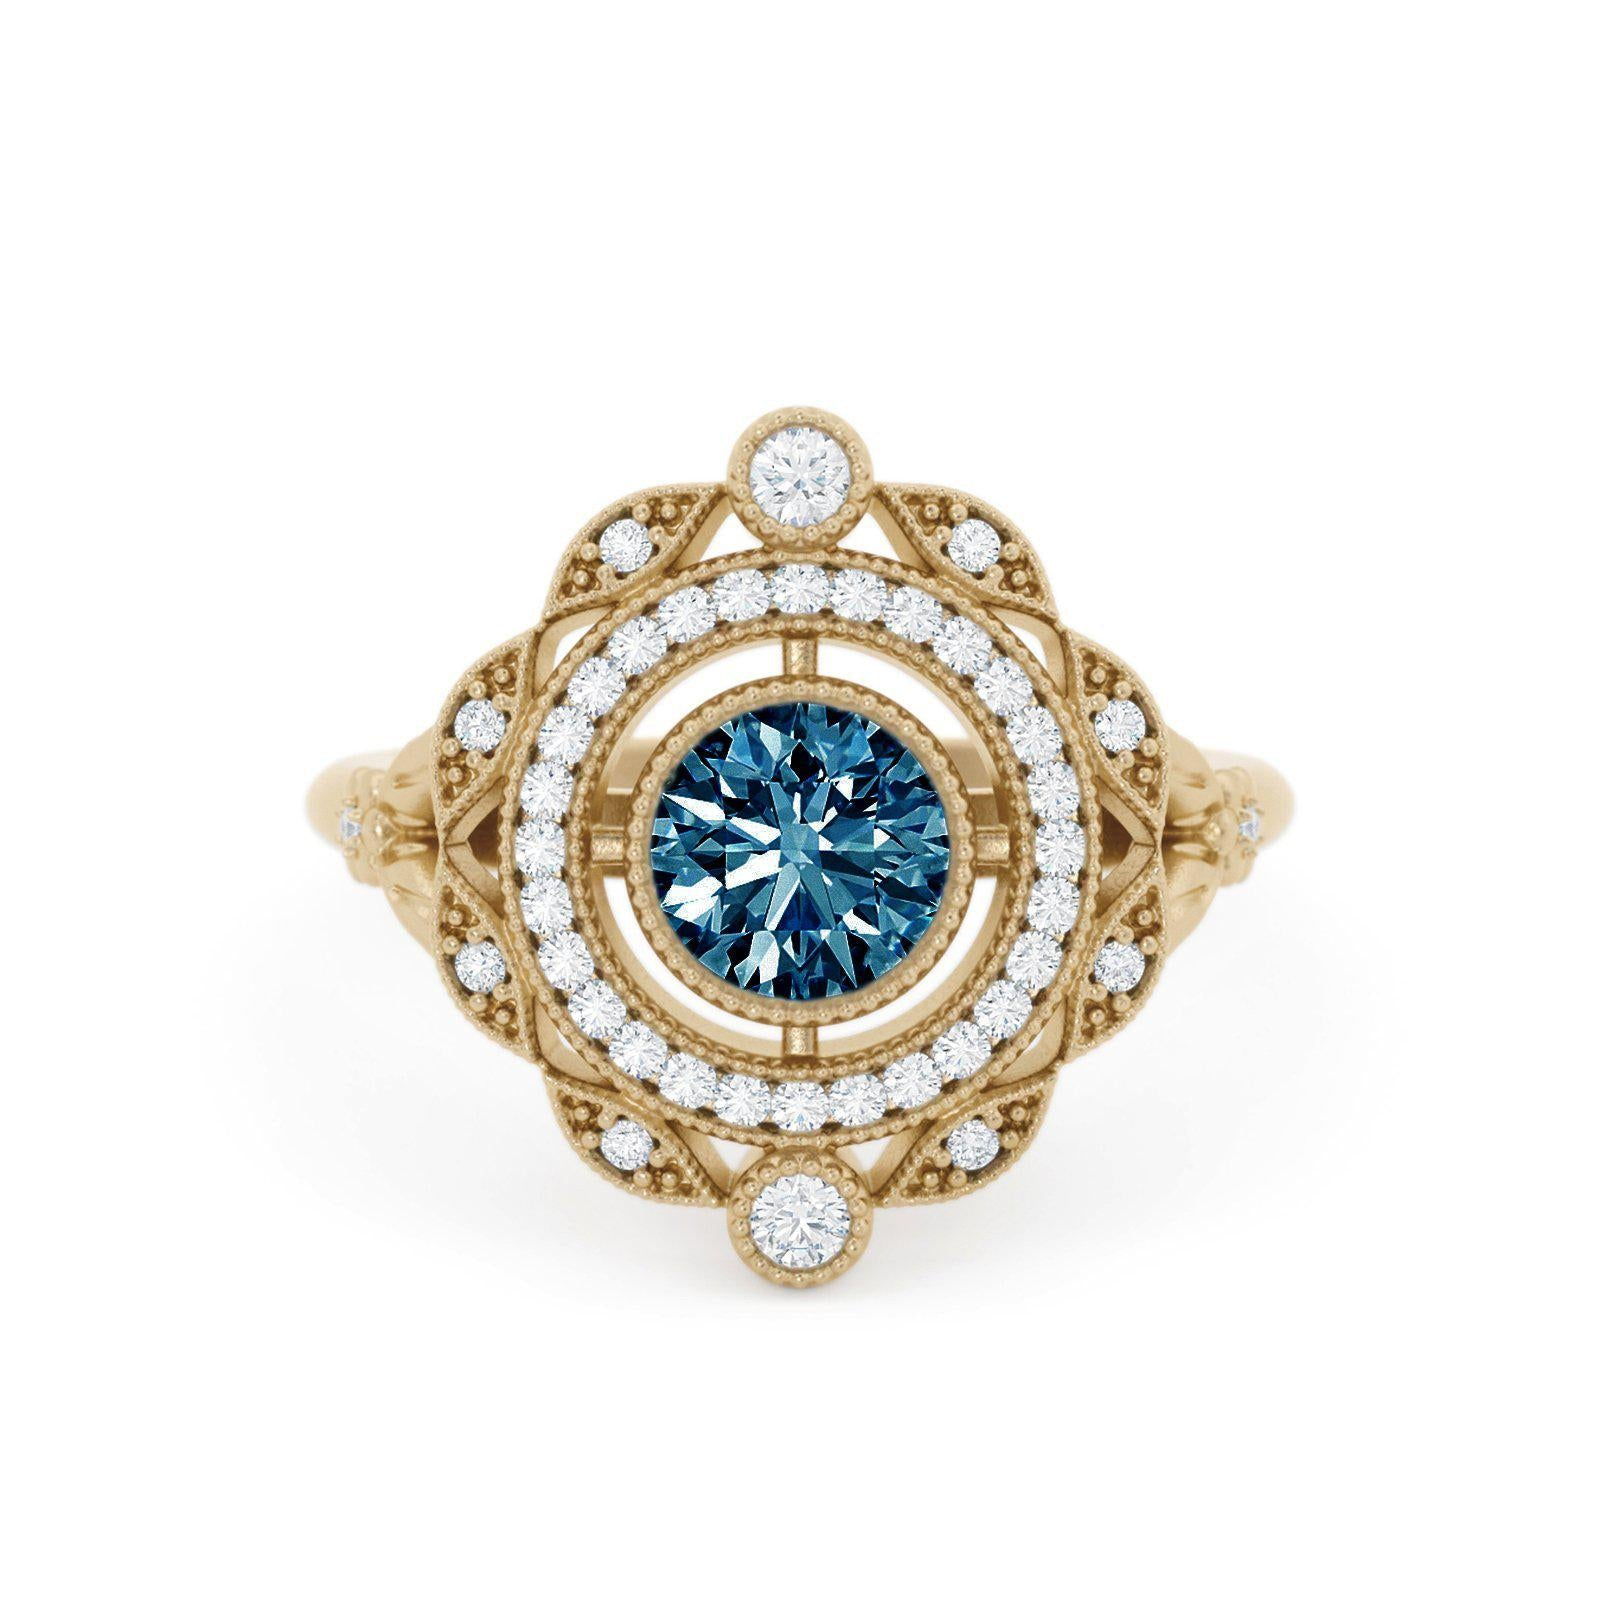 Millicent Montana Sapphire Ring with Double Halo